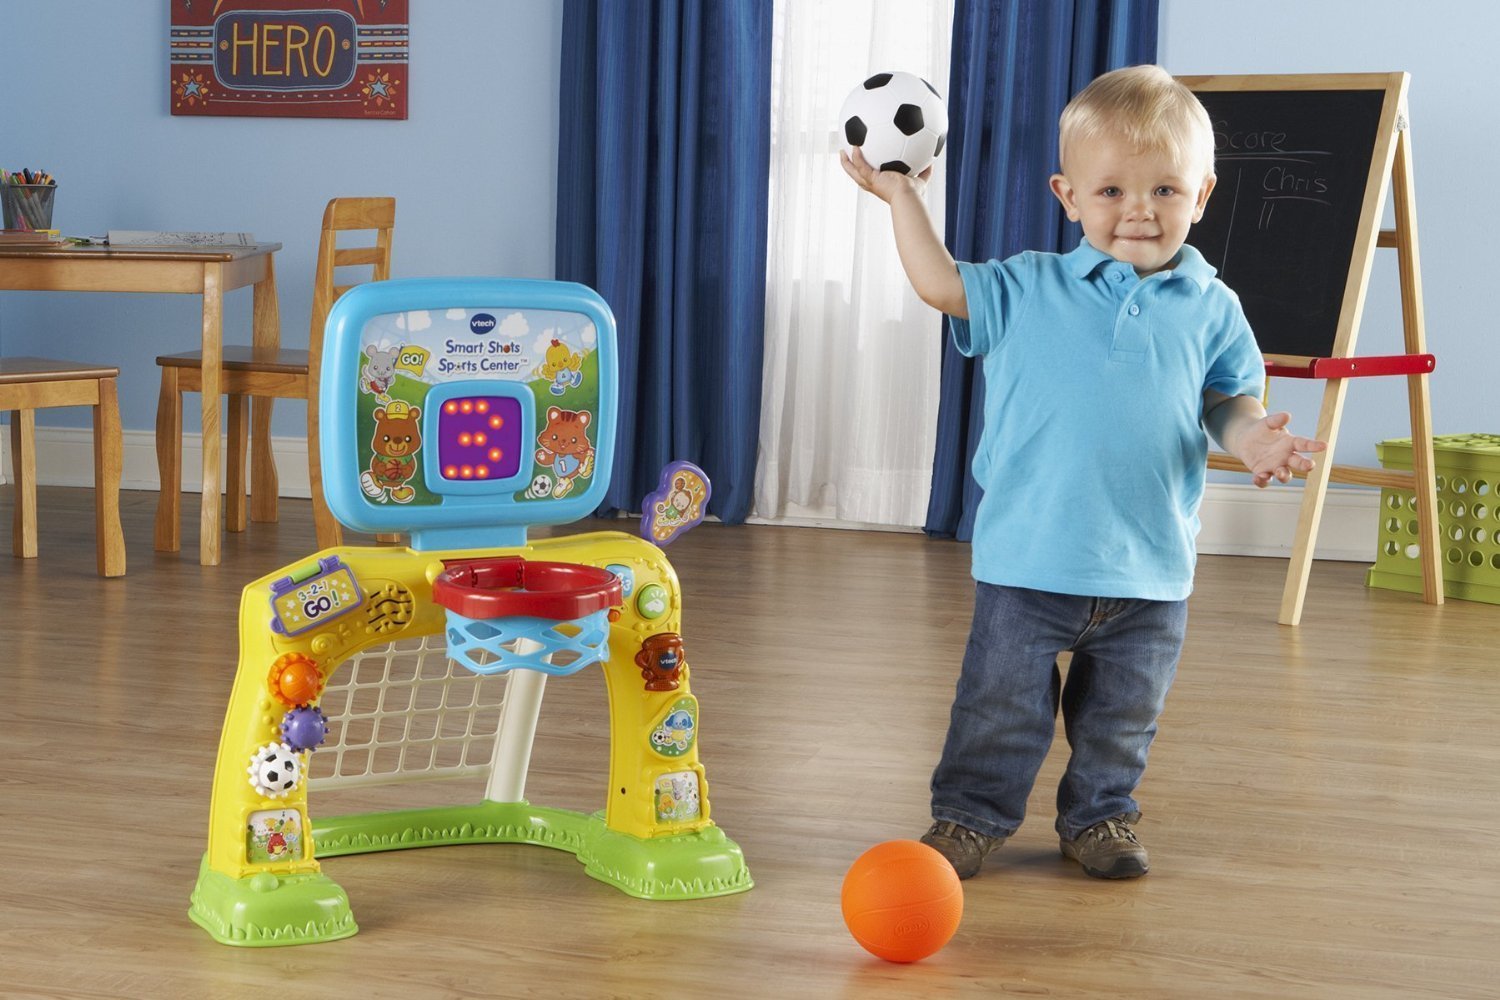 Bright Colors and Cute Design Electronic Smart Shots Sports Center, 50+ Songs, Multicolor by VTech (Image #5)